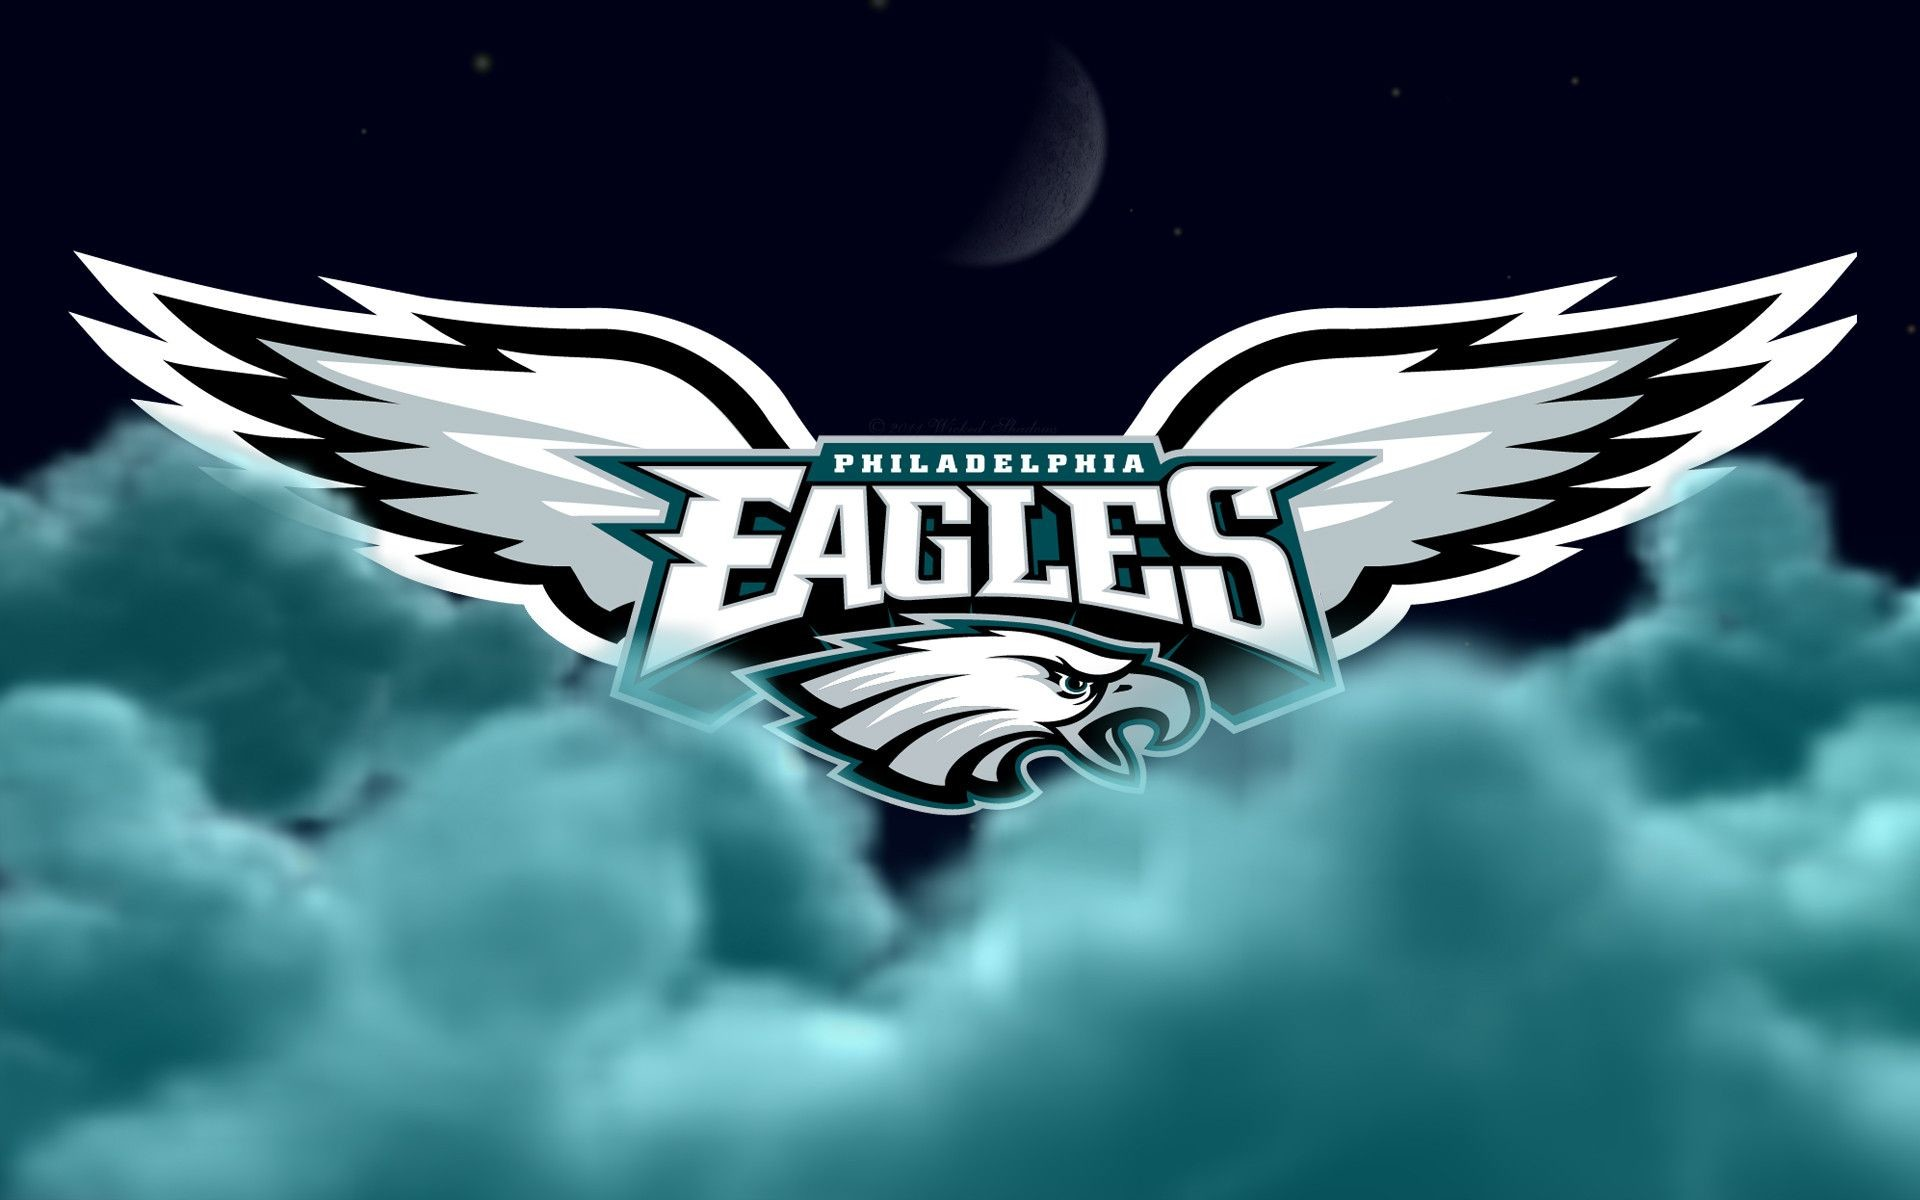 1920x1200 Philadelphia Eagles Wallpapers Wallpaper | HD Wallpapers | Pinterest |  Philadelphia eagles wallpaper, Wallpaper and Wallpaper backgrounds